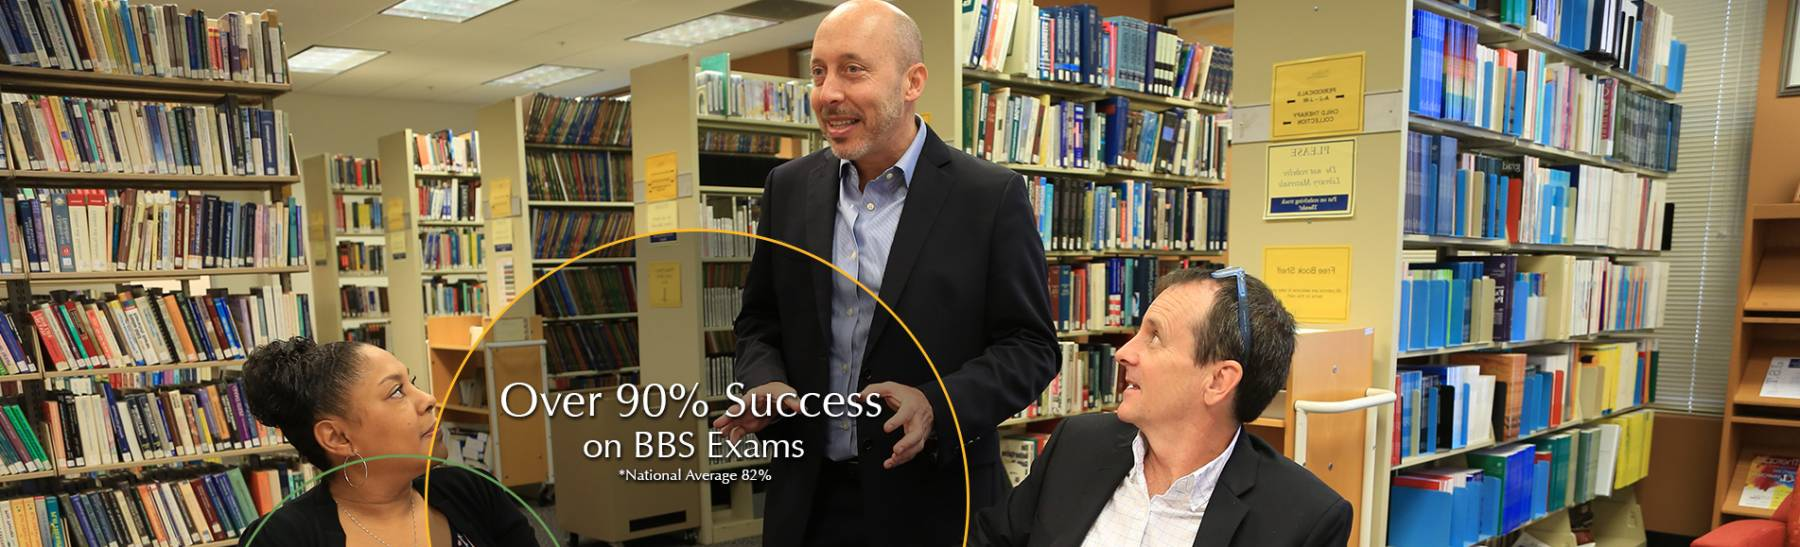 Over 90% success on BBS exams.